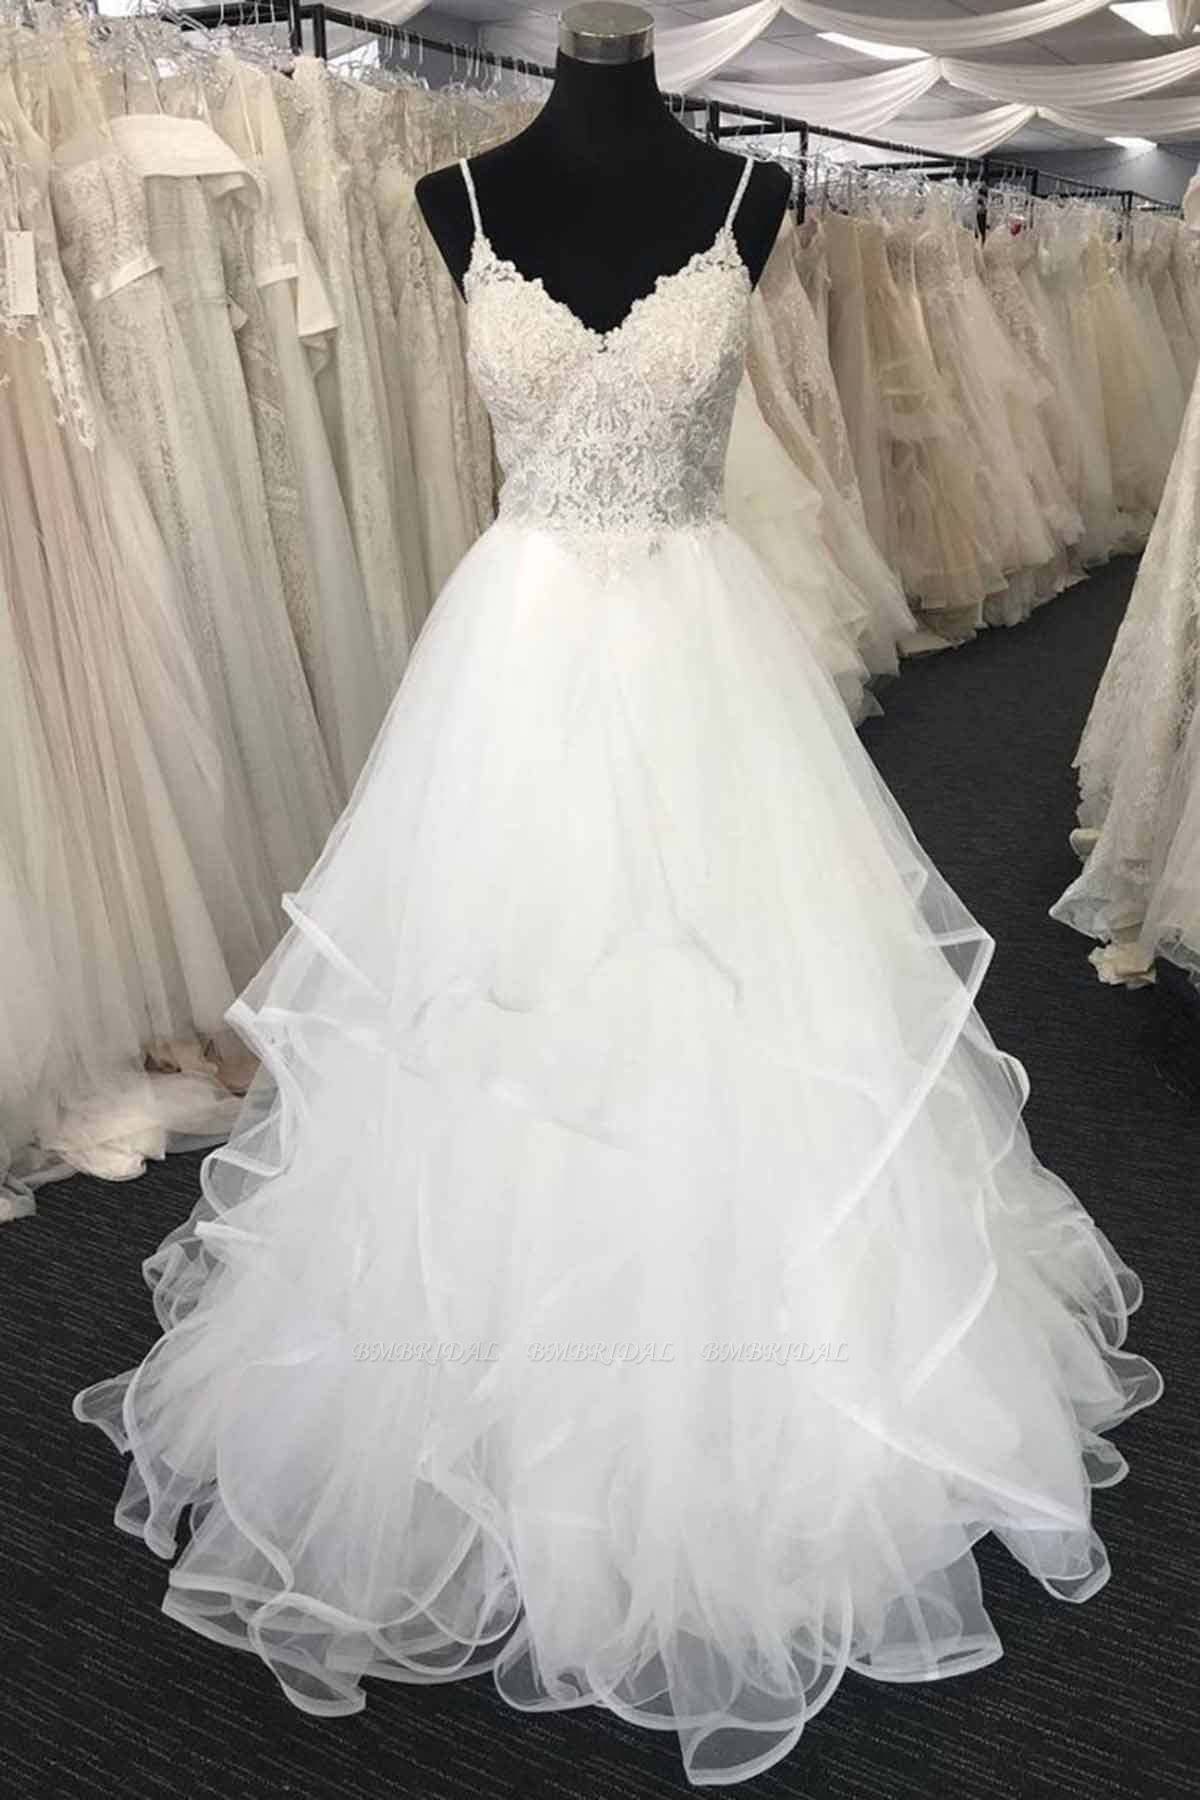 BMbridal Elegant Sweetheart Neck Long White Lace Wedding Dress Spaghetti Straps Bridal Gowns On Sale